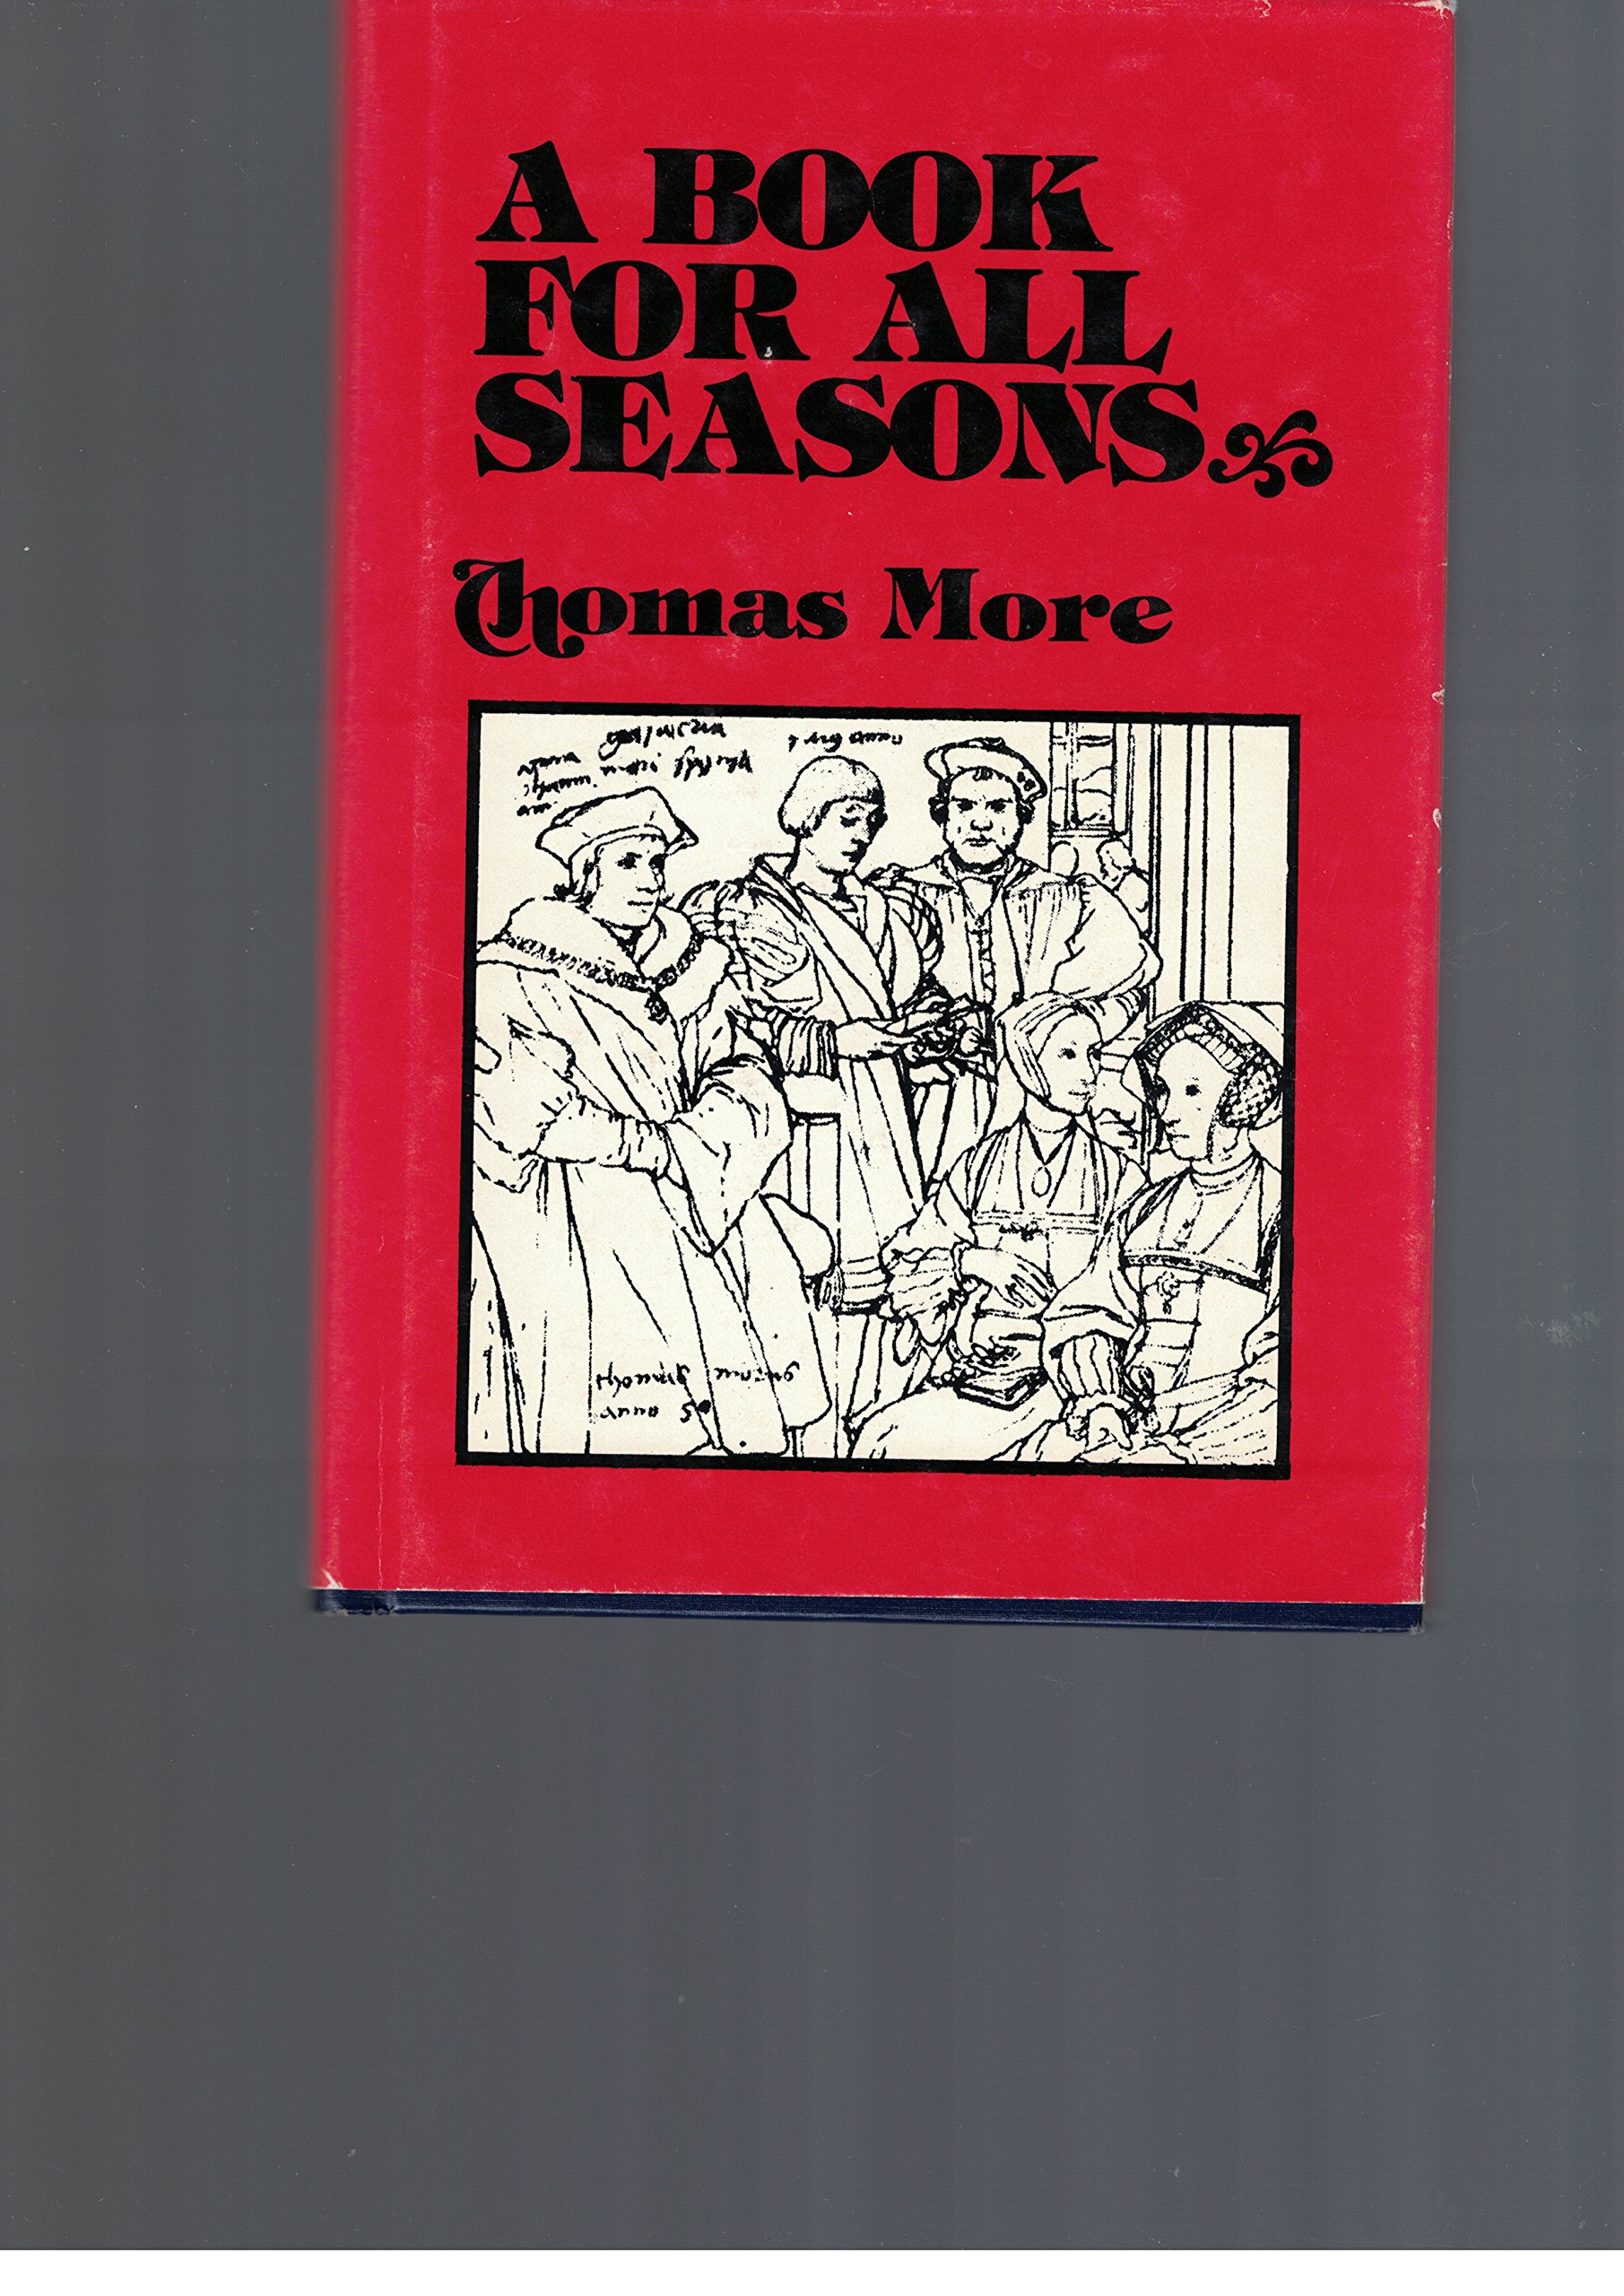 A Book for All Seasons: Thomas More, Thomas More